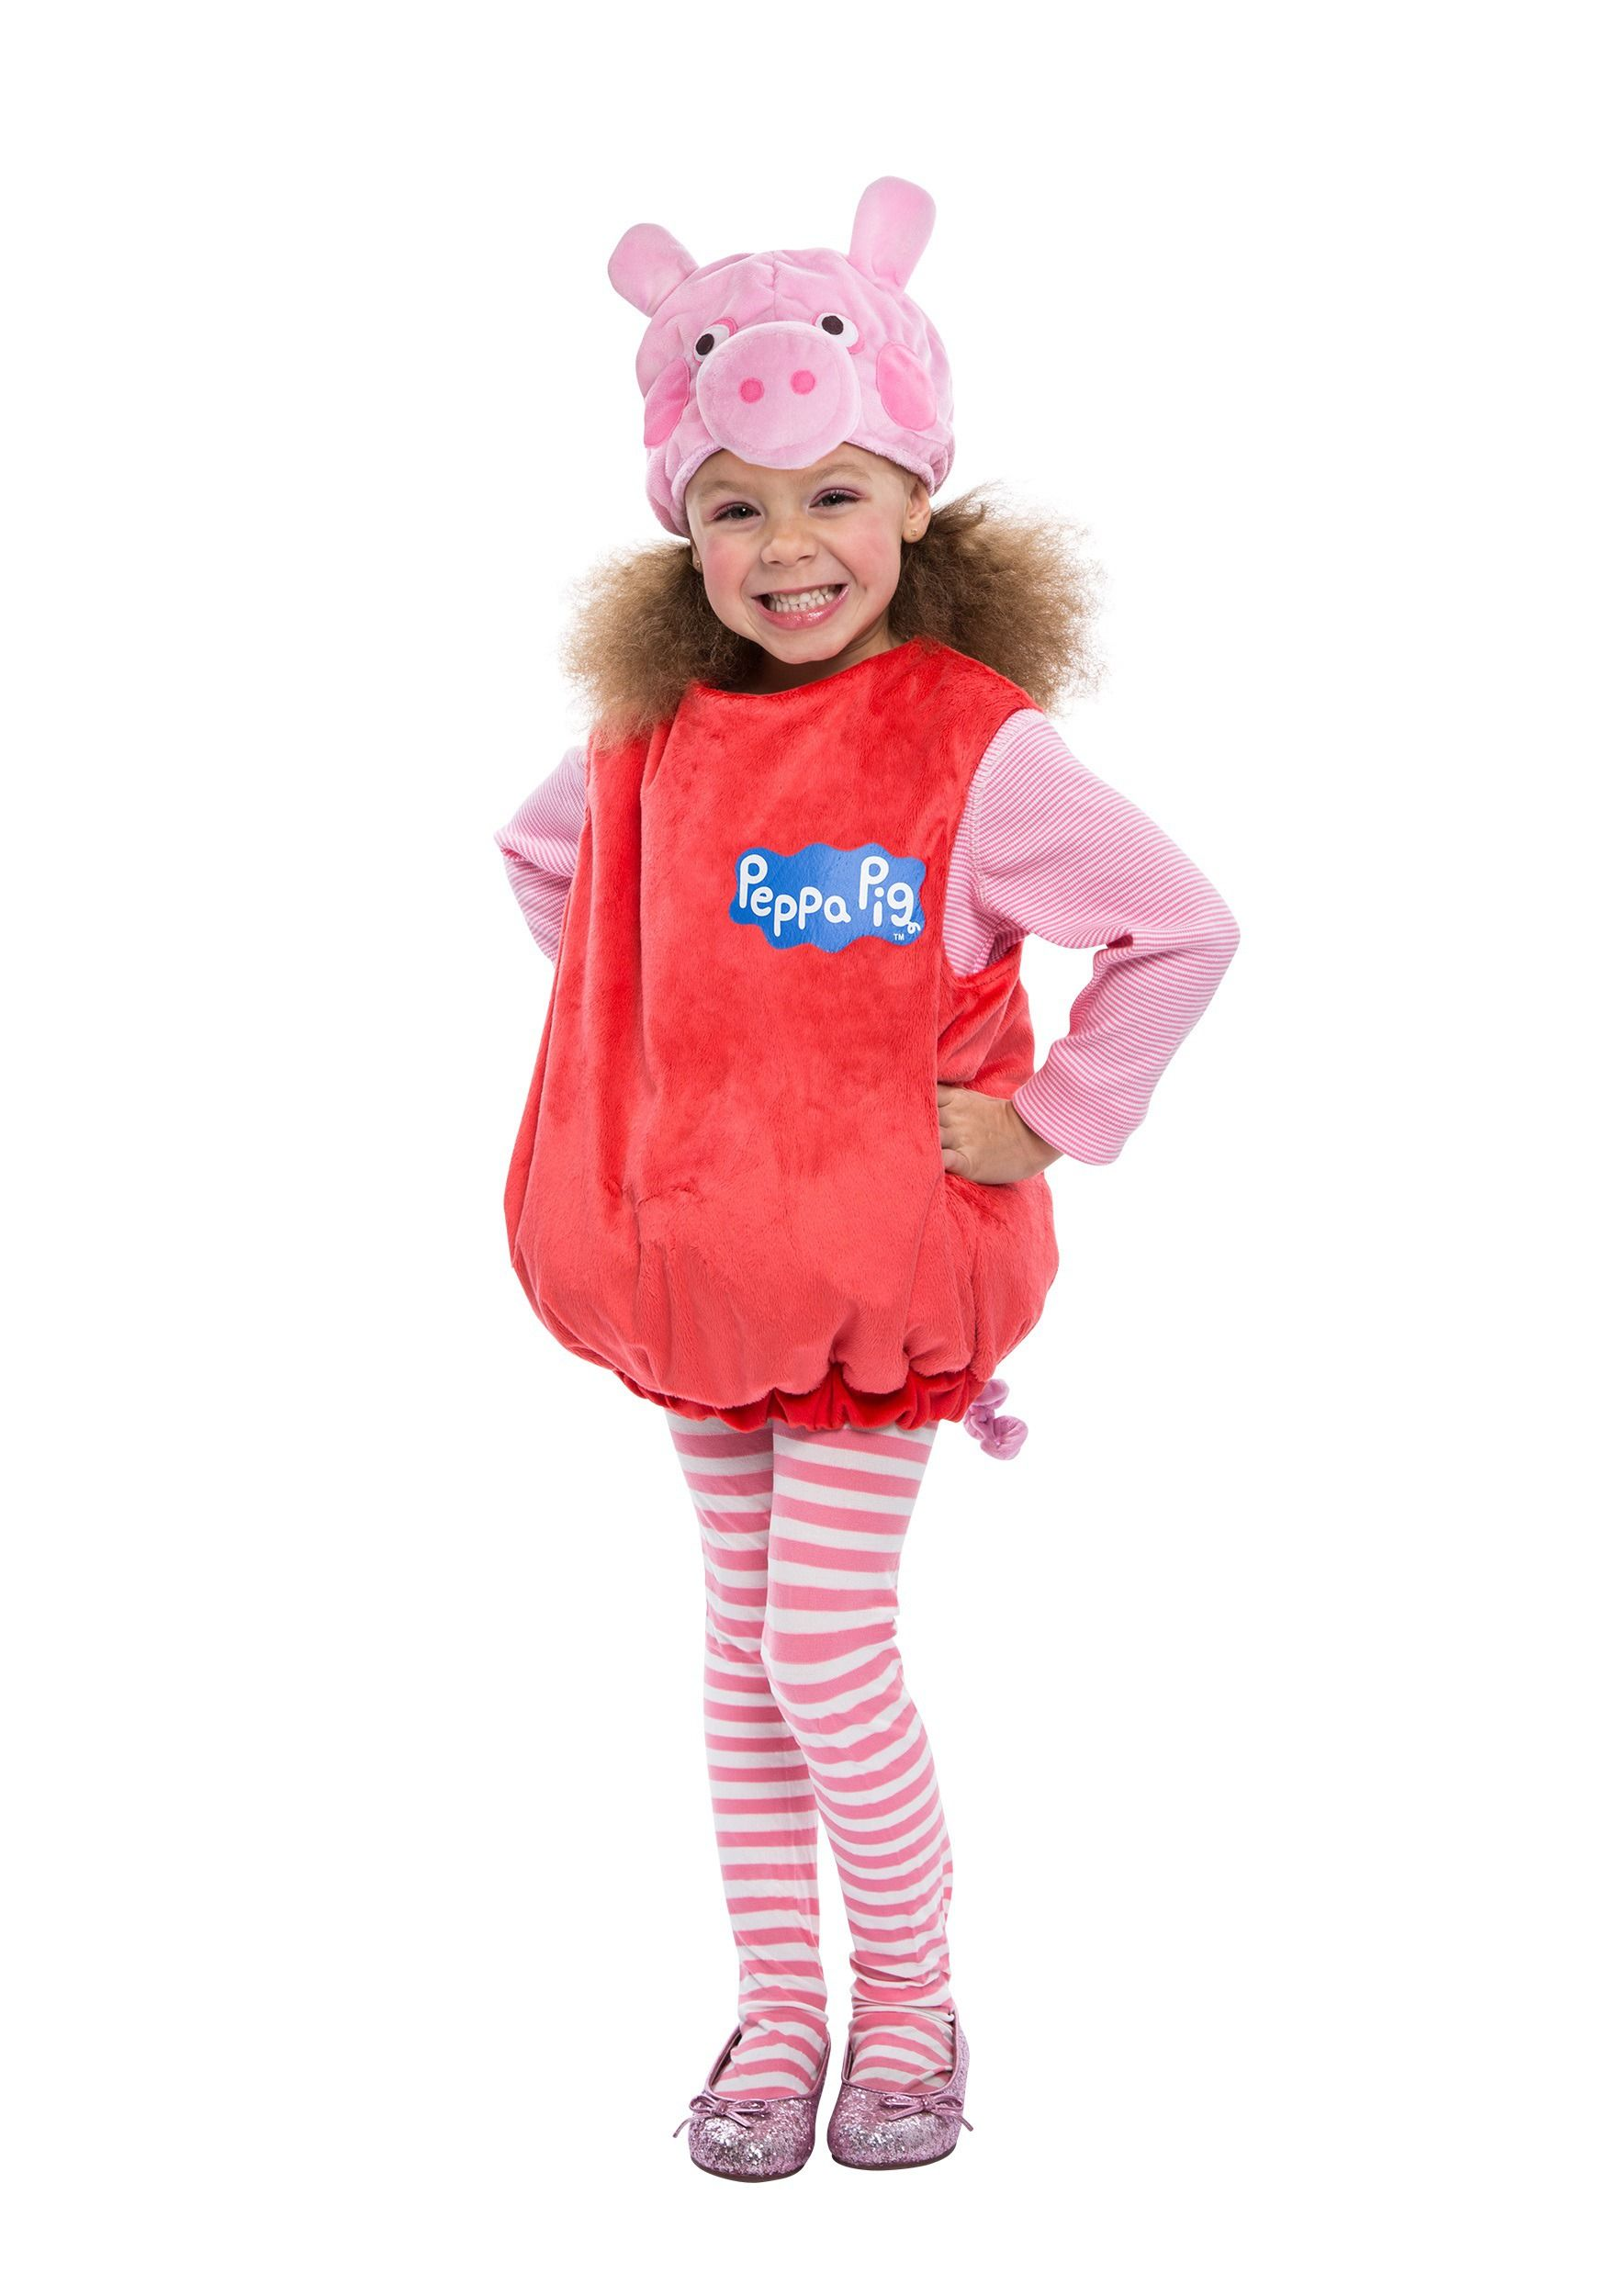 Peppa Pig Bubble Costume | Cute Halloween Costumes | Pinterest